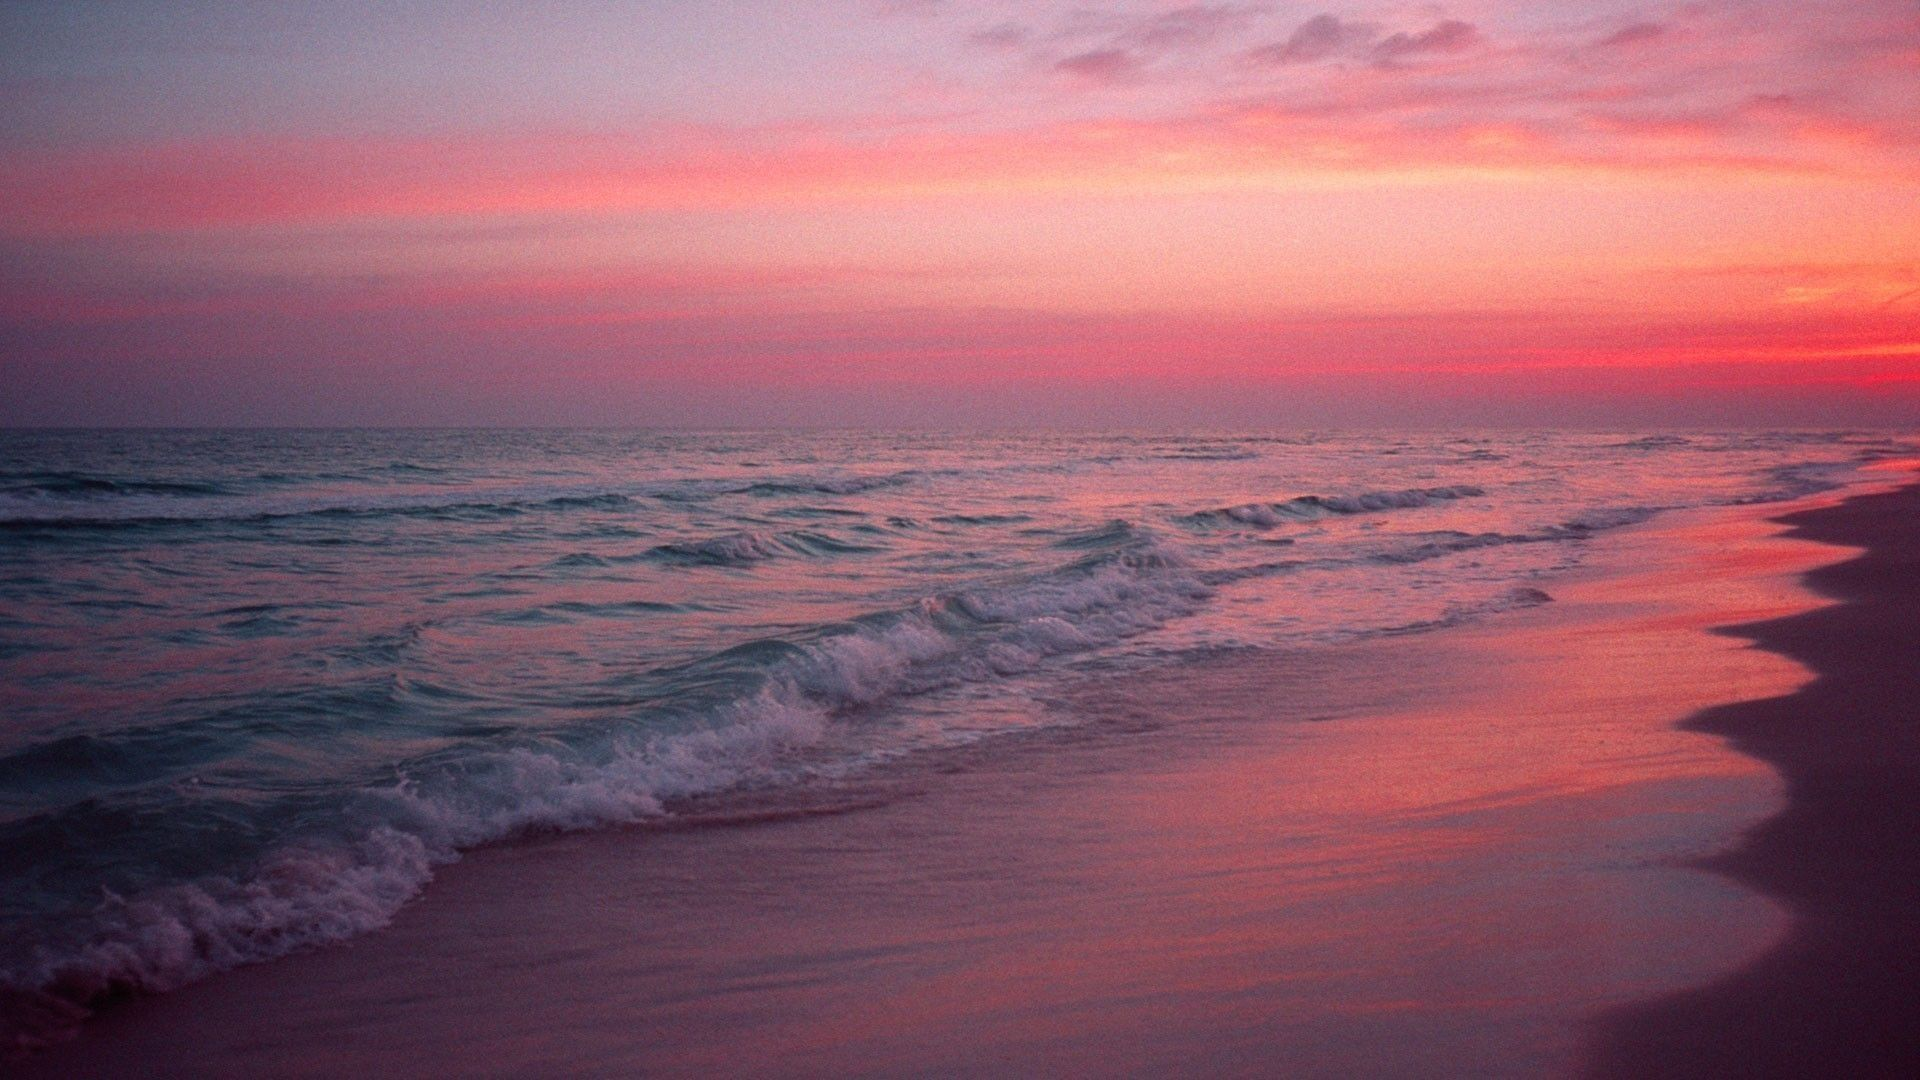 Pink Sky Aesthetic PC Wallpapers - Wallpaper Cave